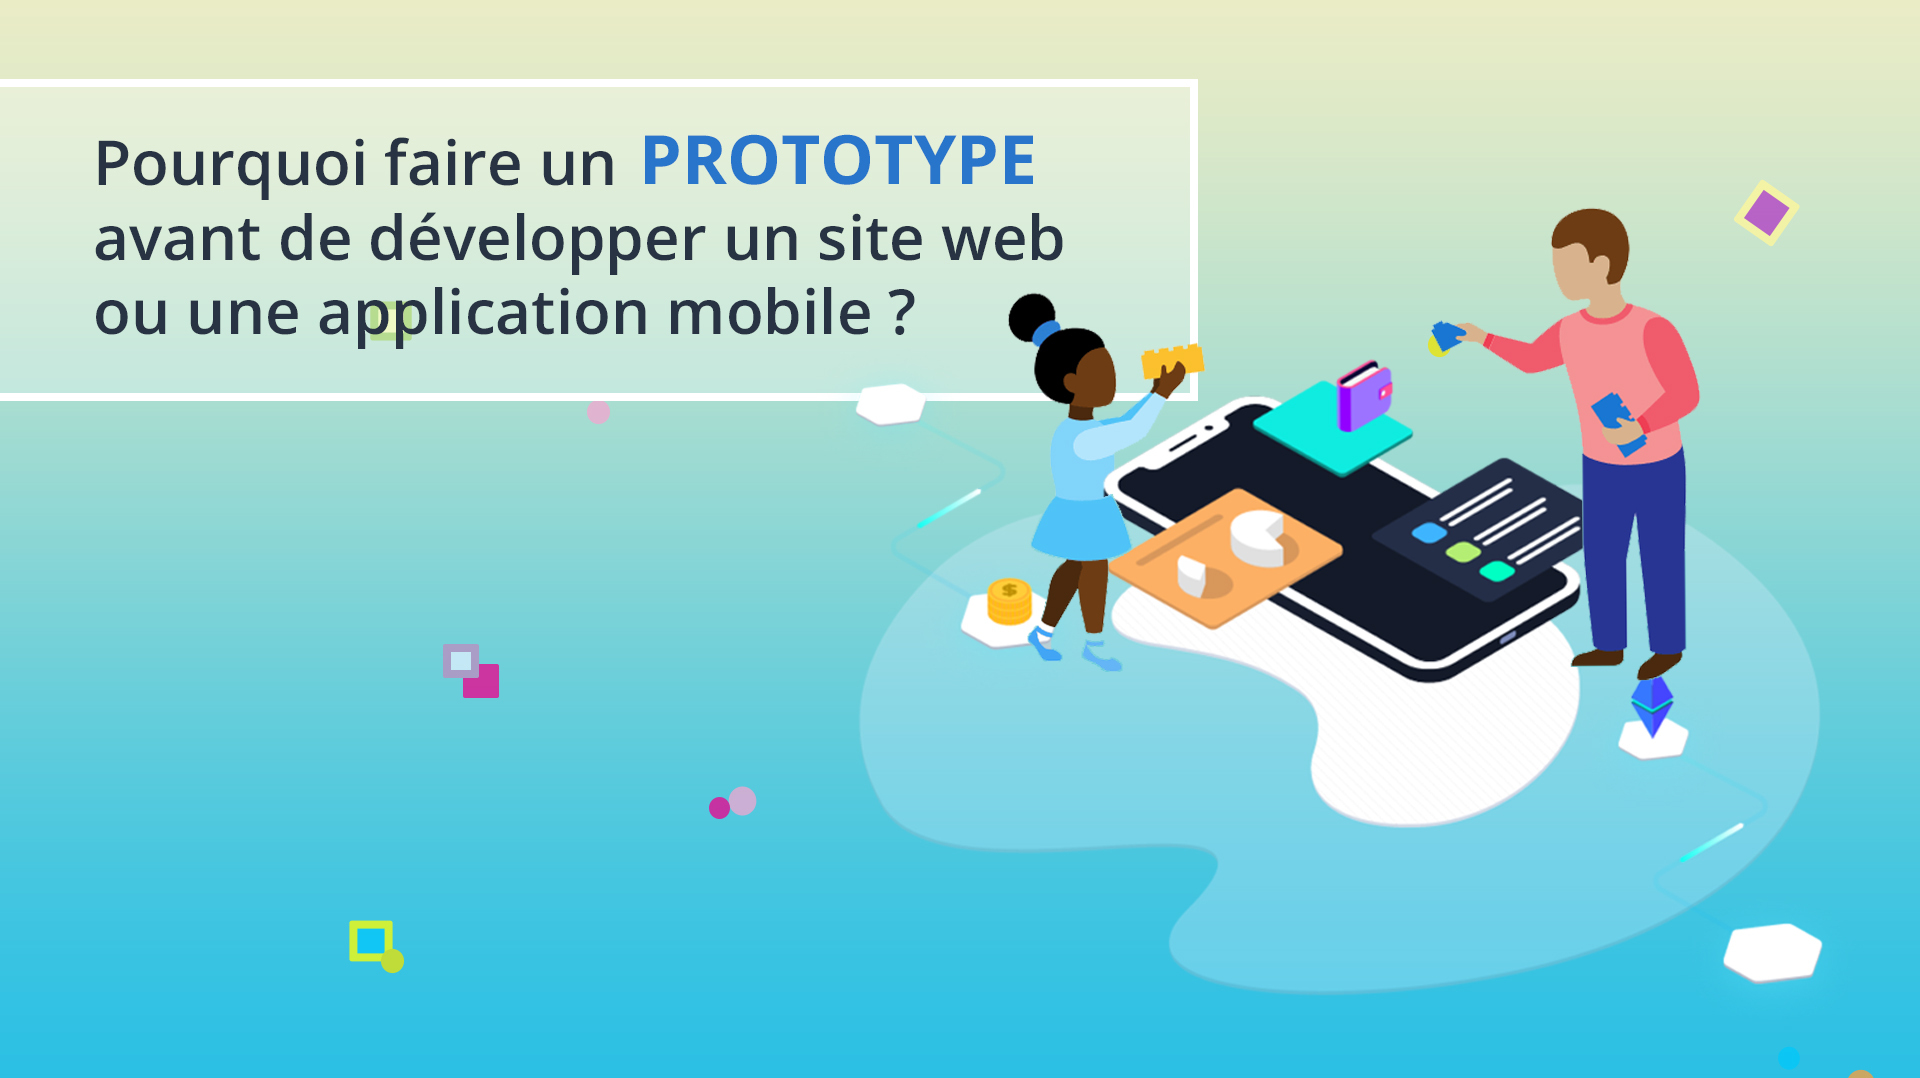 Illusatration Pourquoi faire un prototype avant de développer un site web ou une application mobile ?